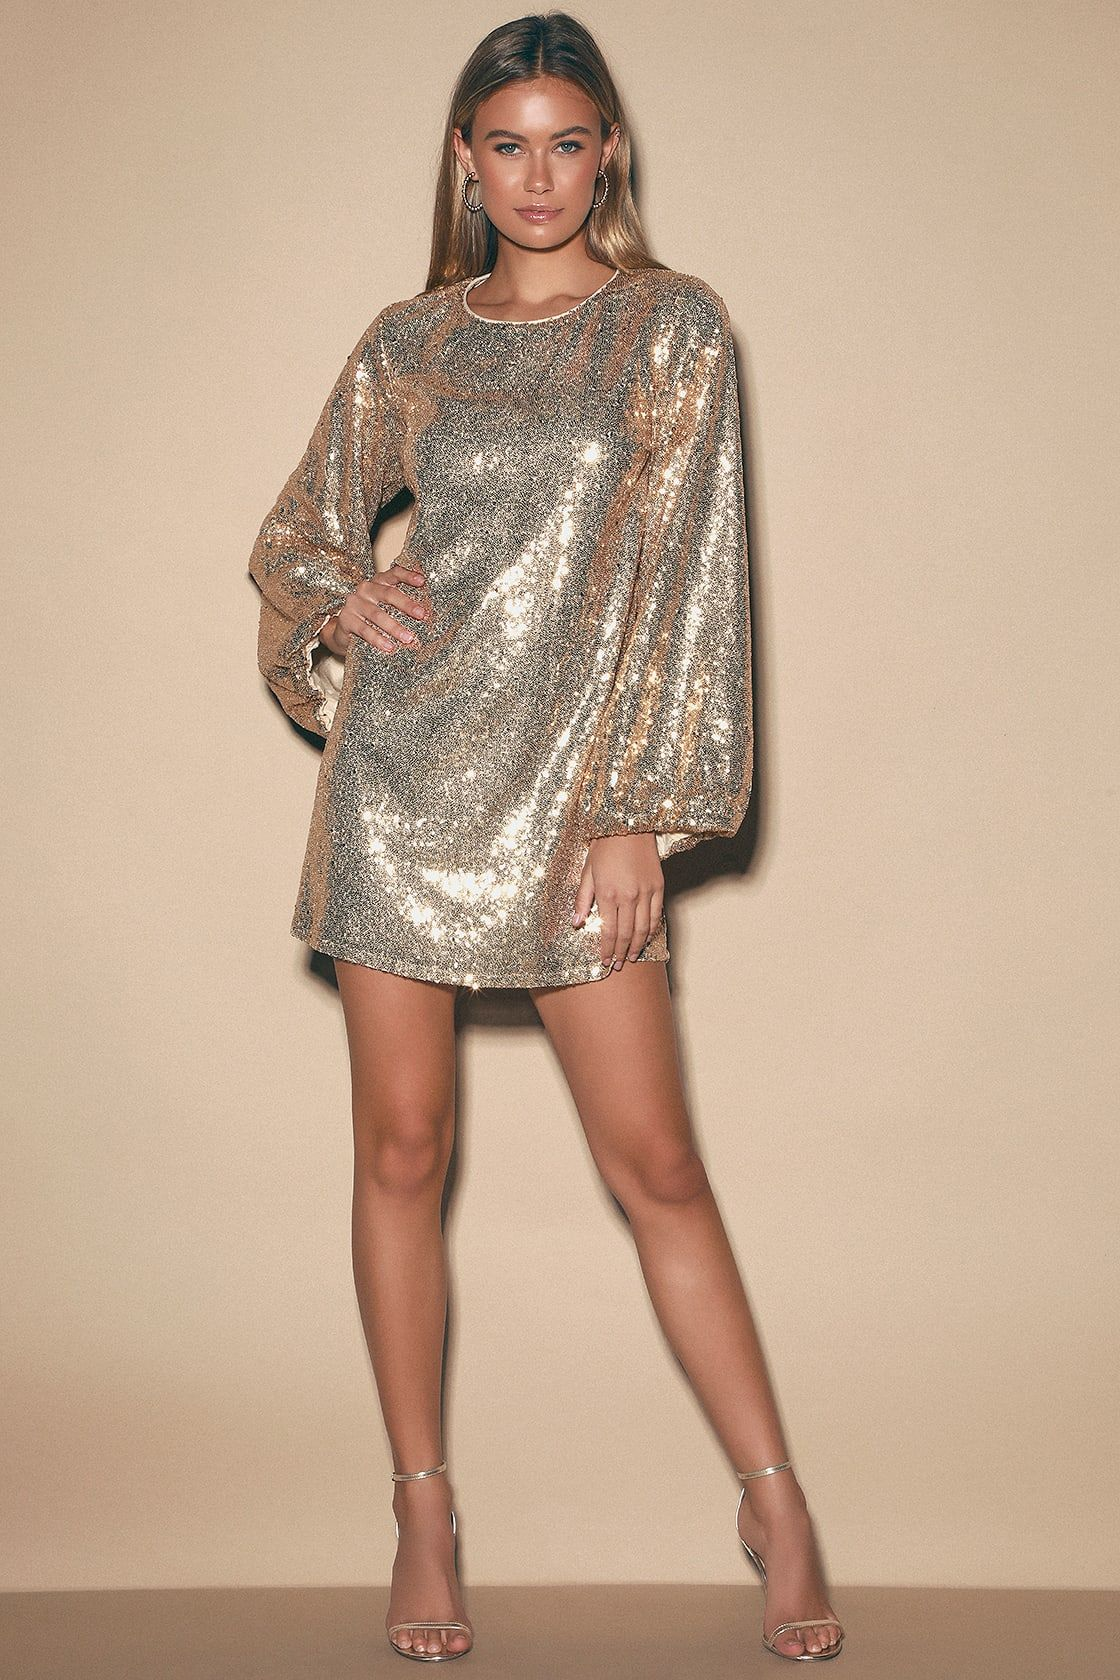 Round Two Gold Sequin Balloon Sleeve Shift Dress Mini Dress With Sleeves Shift Dress Dresses [ 1680 x 1120 Pixel ]